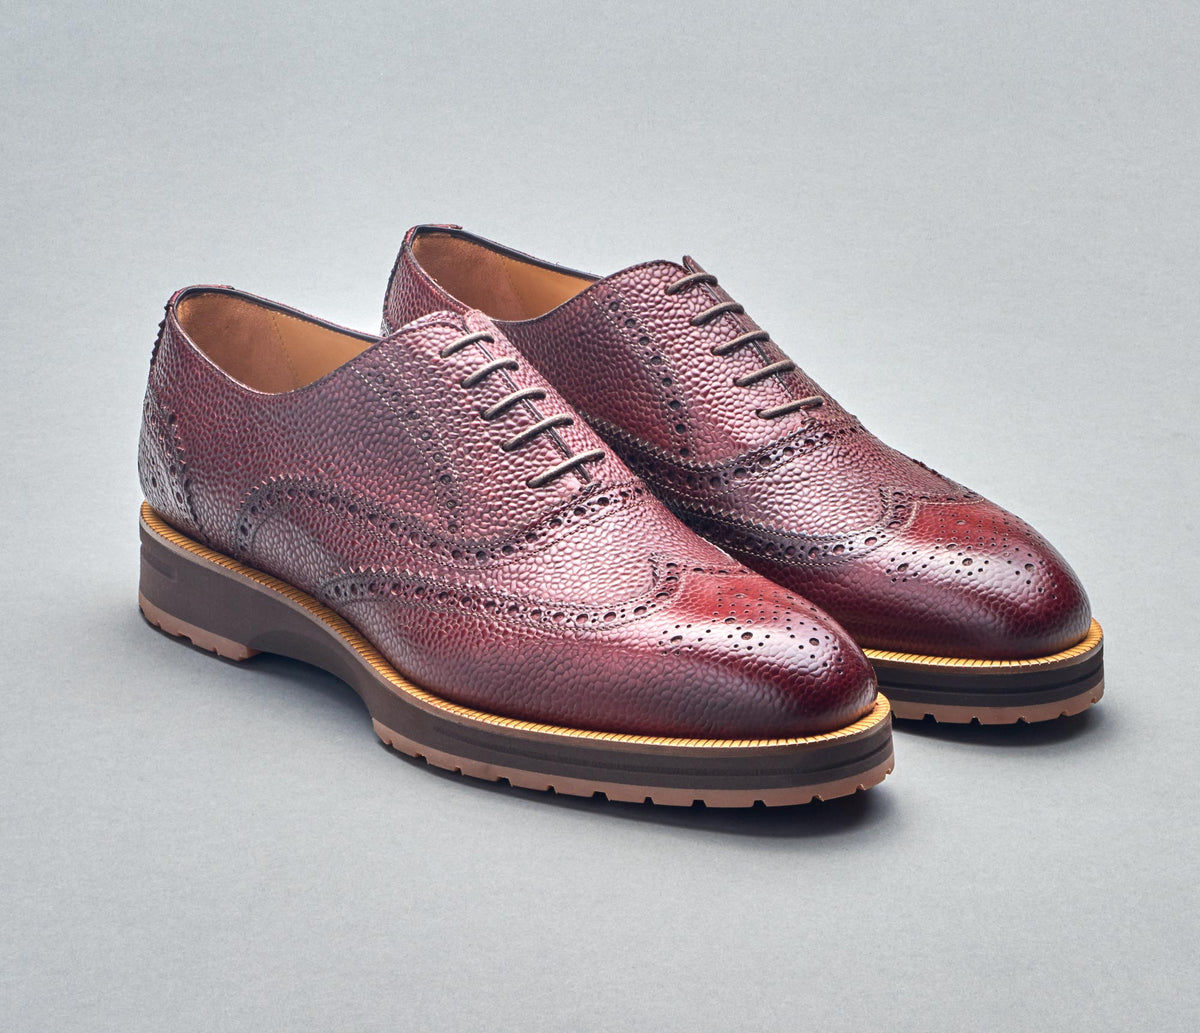 SC575 Scotch Grain Burgundy DP